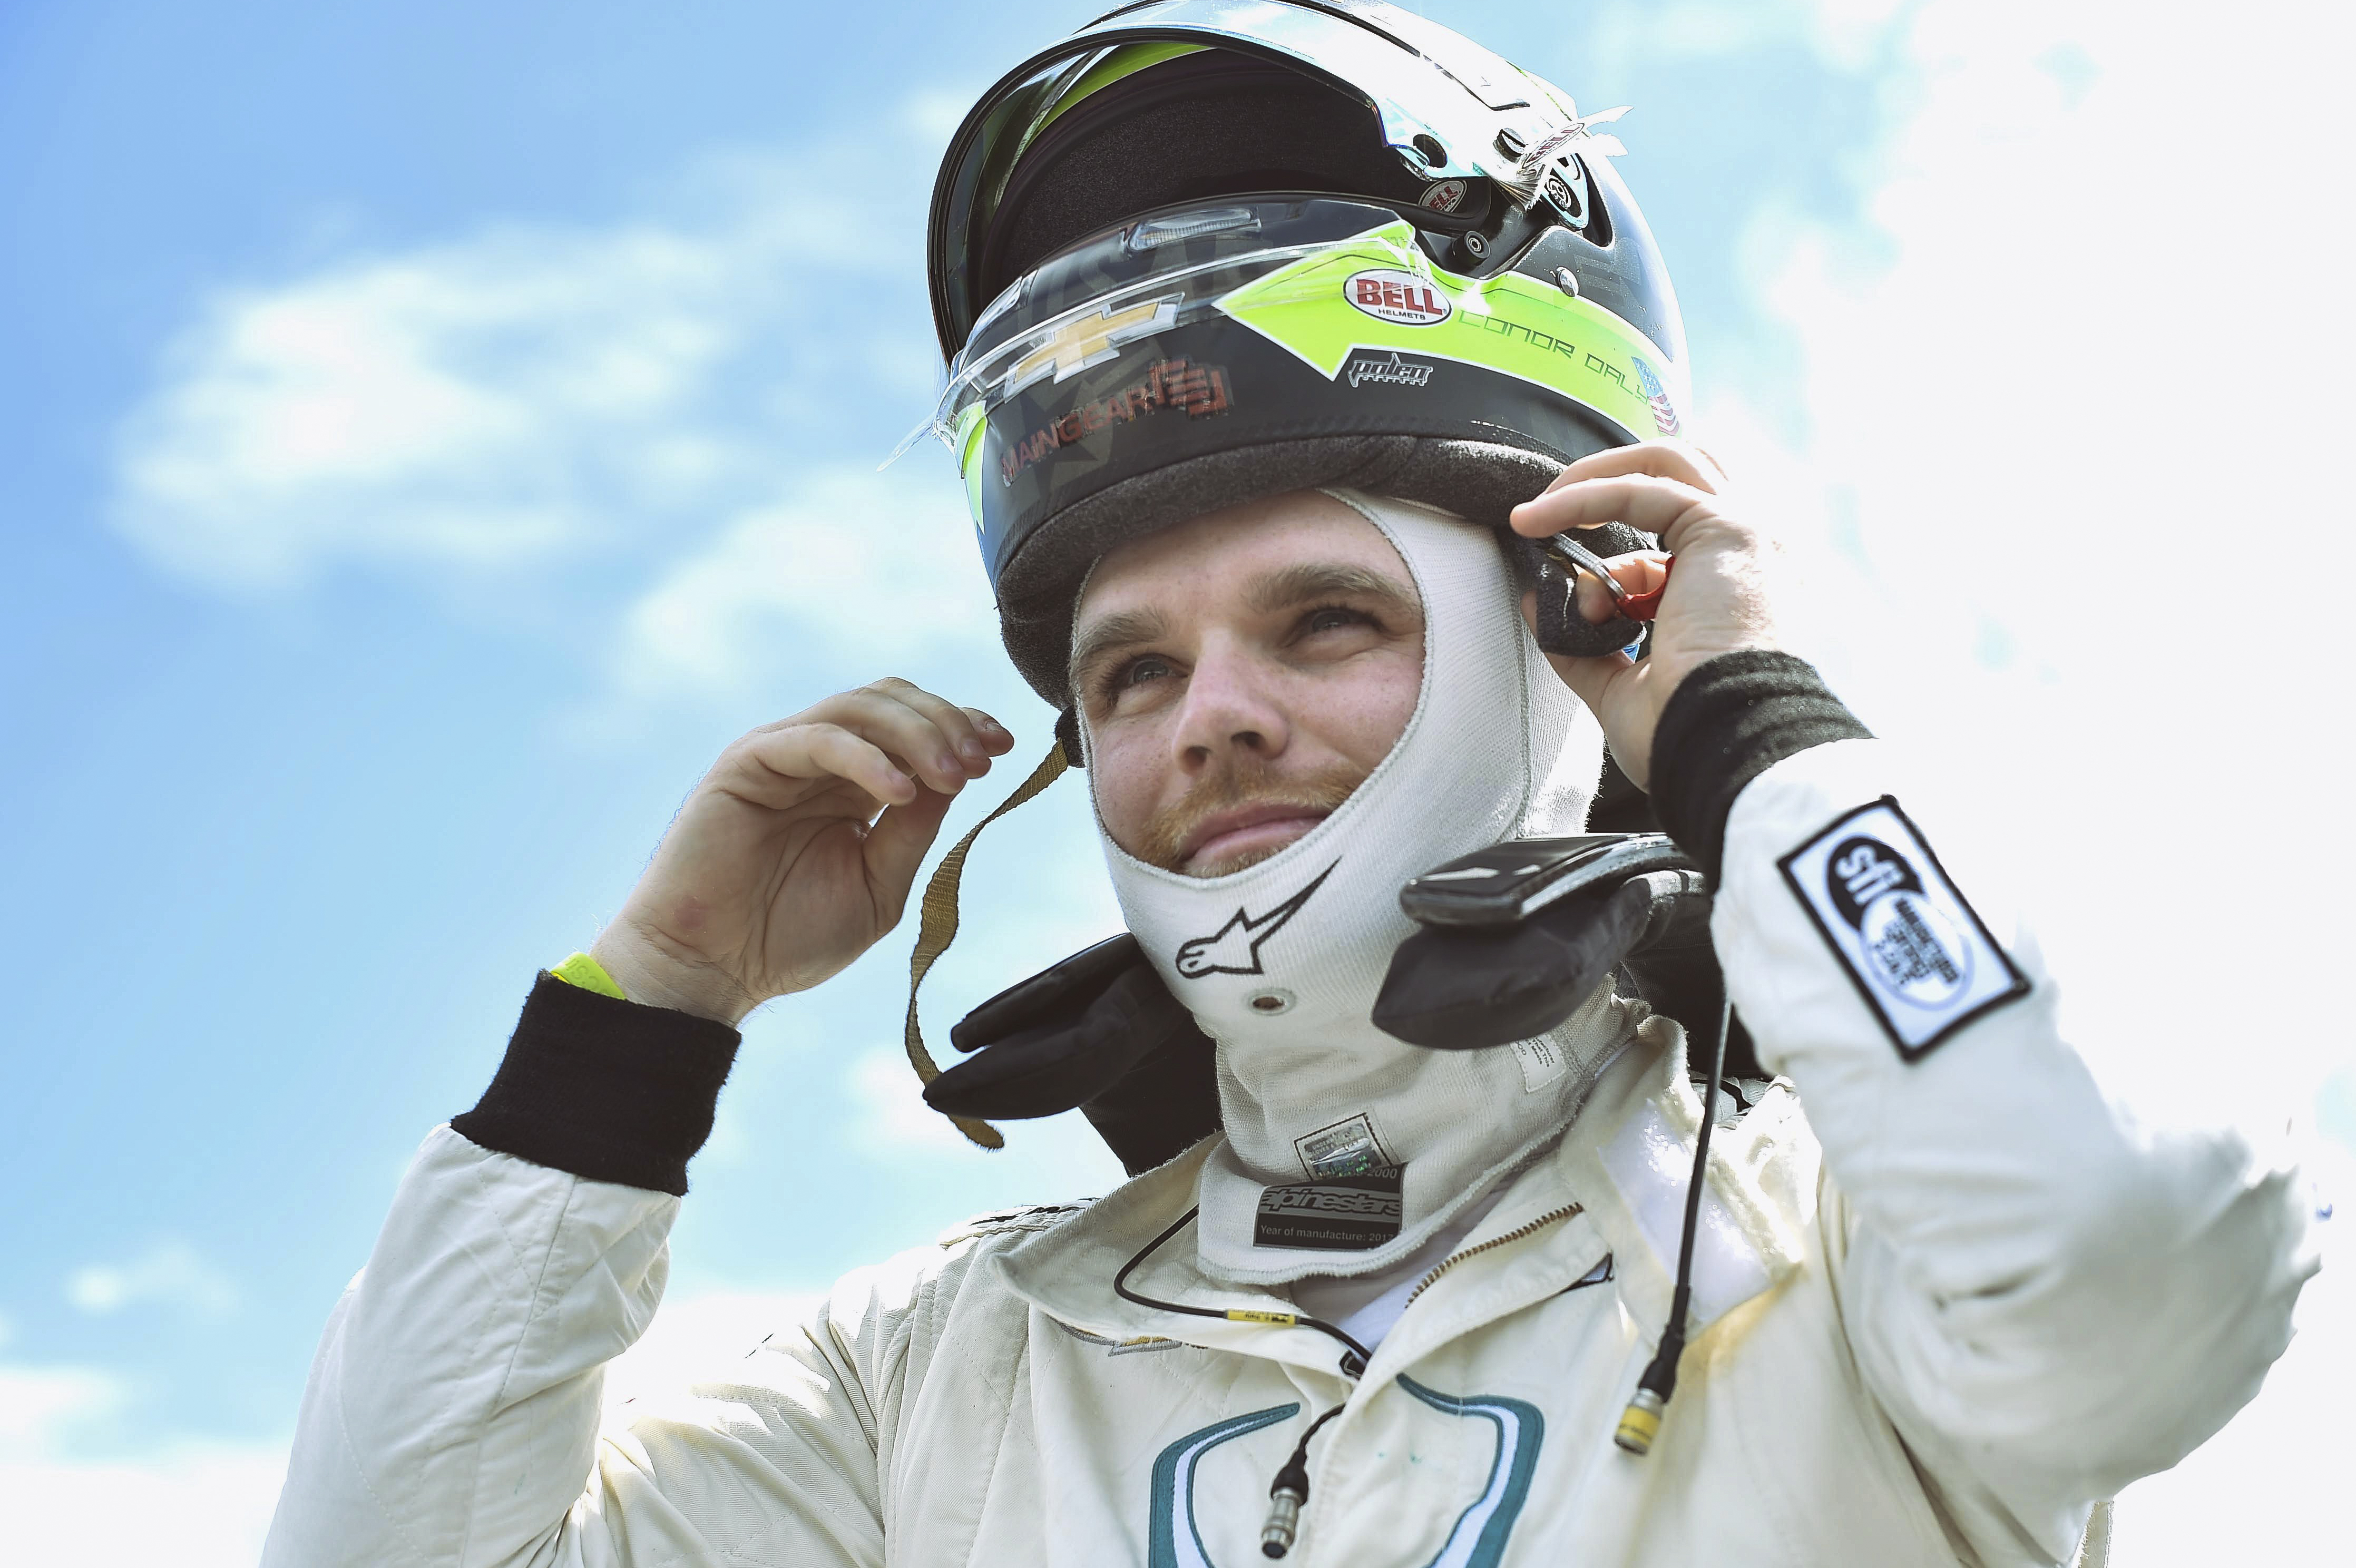 Conor Daly and Andretti Autosport team up for Indianapolis 500 effort